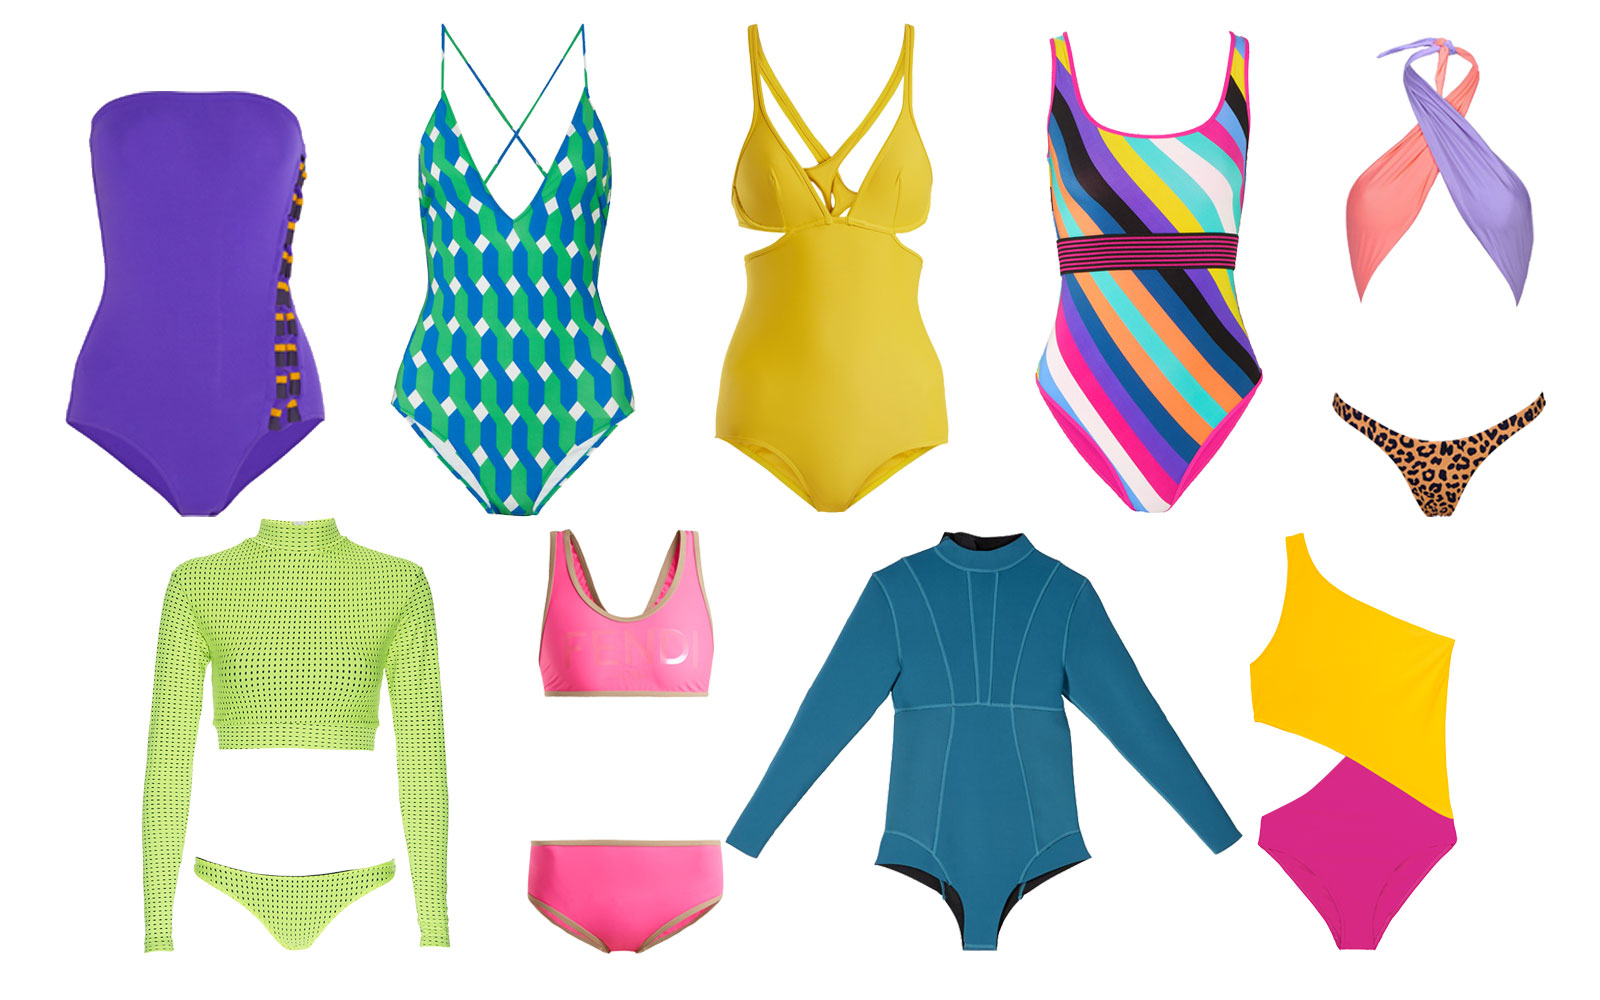 Graphic Neon Swimwear for 2018